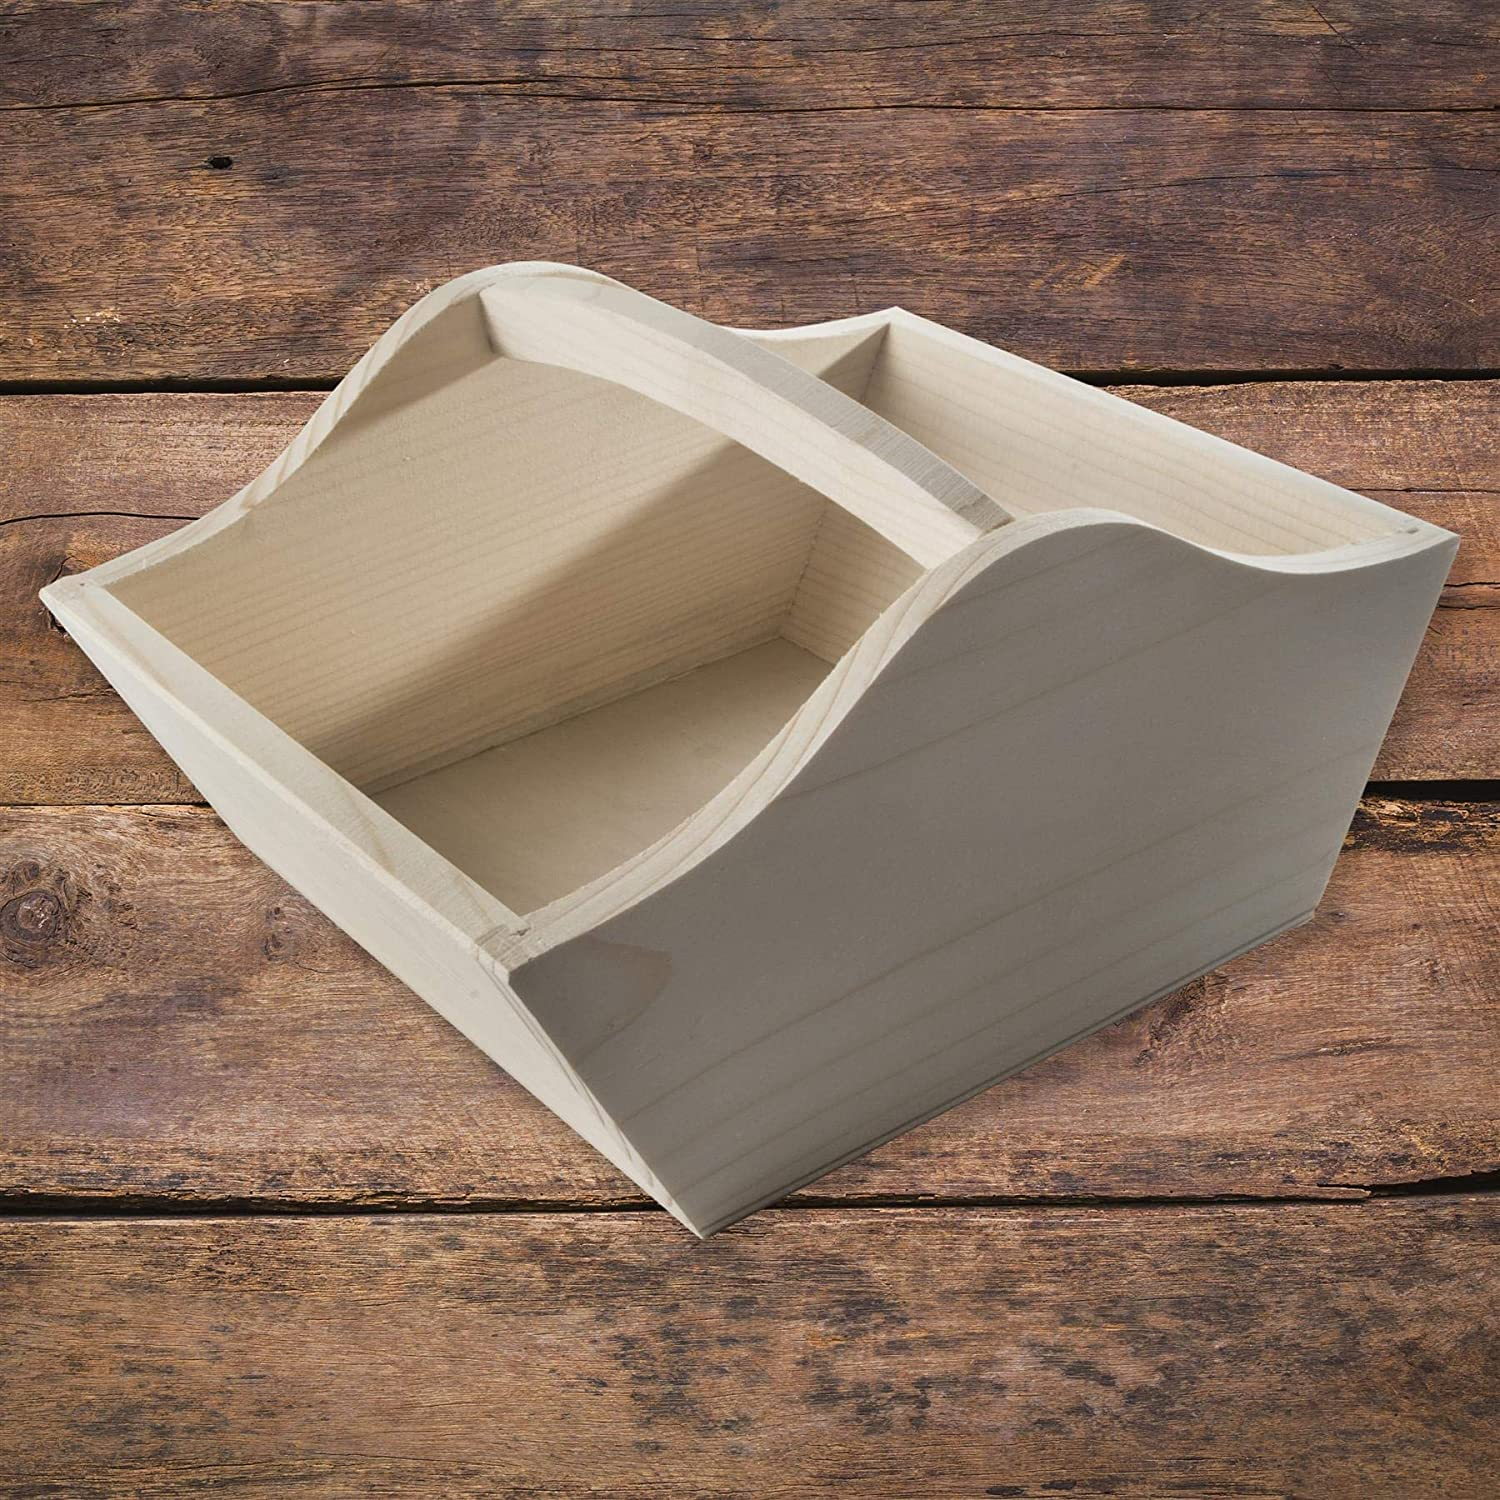 WooDeeDoo Plain Wooden Basket Carrier Trug 17 x 14 x 10 cm Pine Humper Easter Decorations Unpainted Unfinished Pinewood